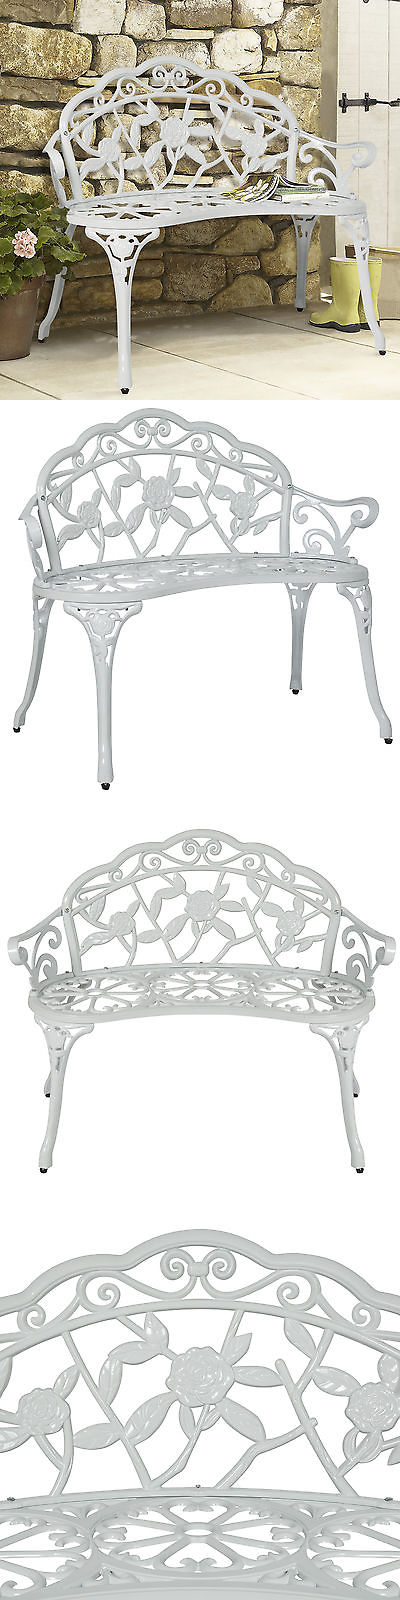 Benches 79678: Bcp Outdoor Patio Garden Bench Park Yard Furniture Cast Iron  Antique Rose White